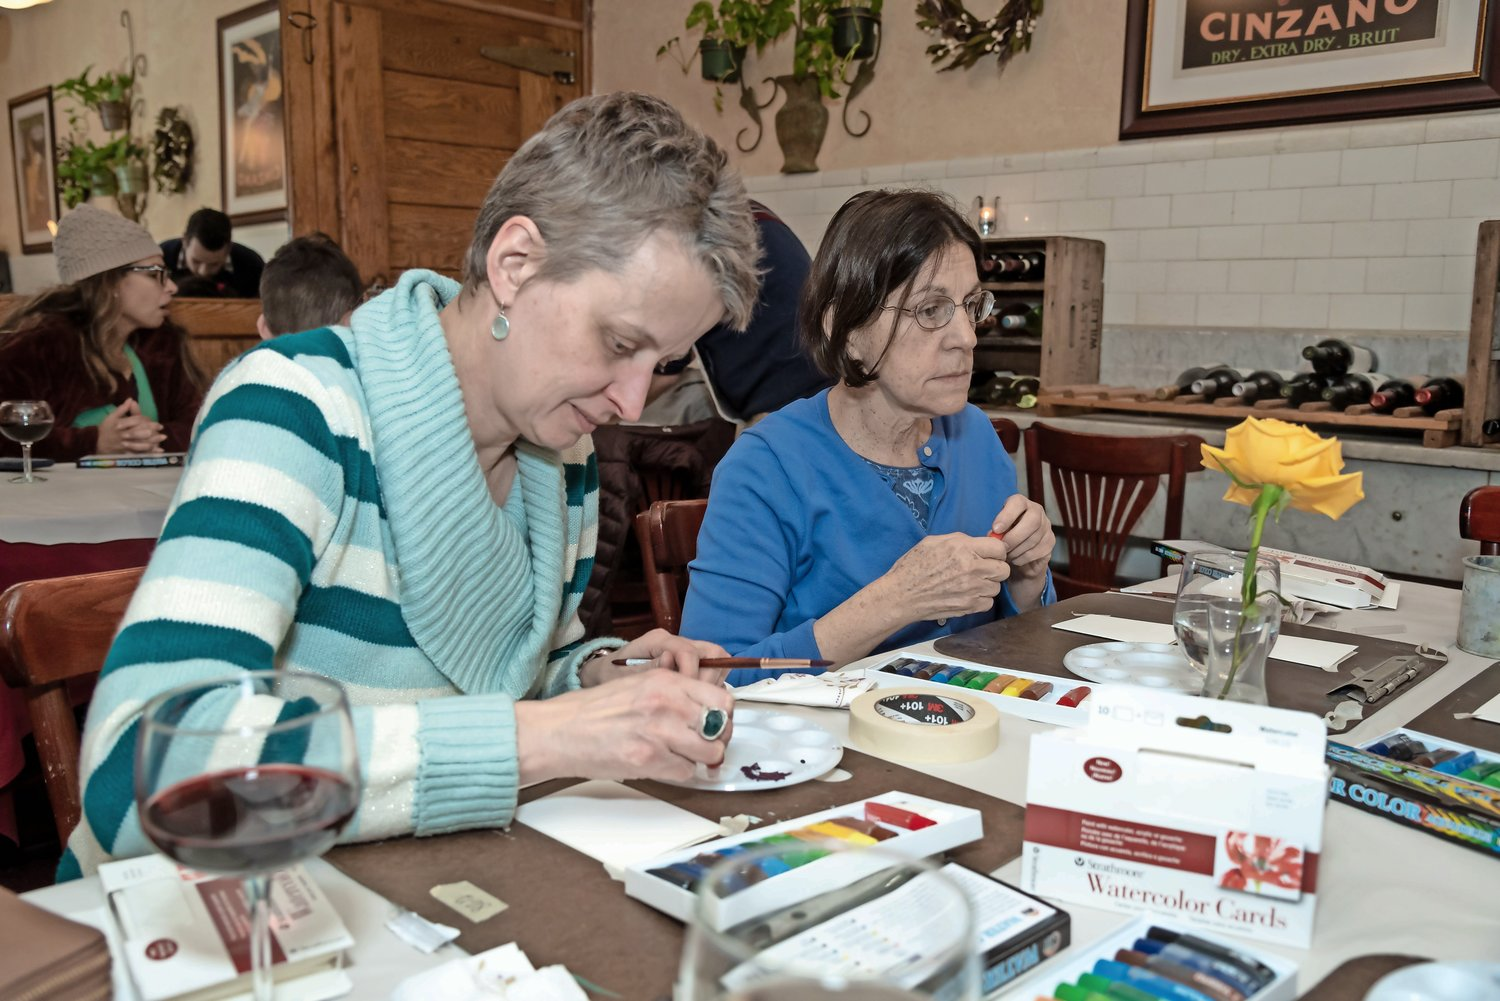 Anke Grosskopt, left, and Carole Kle thought about what they would paint.